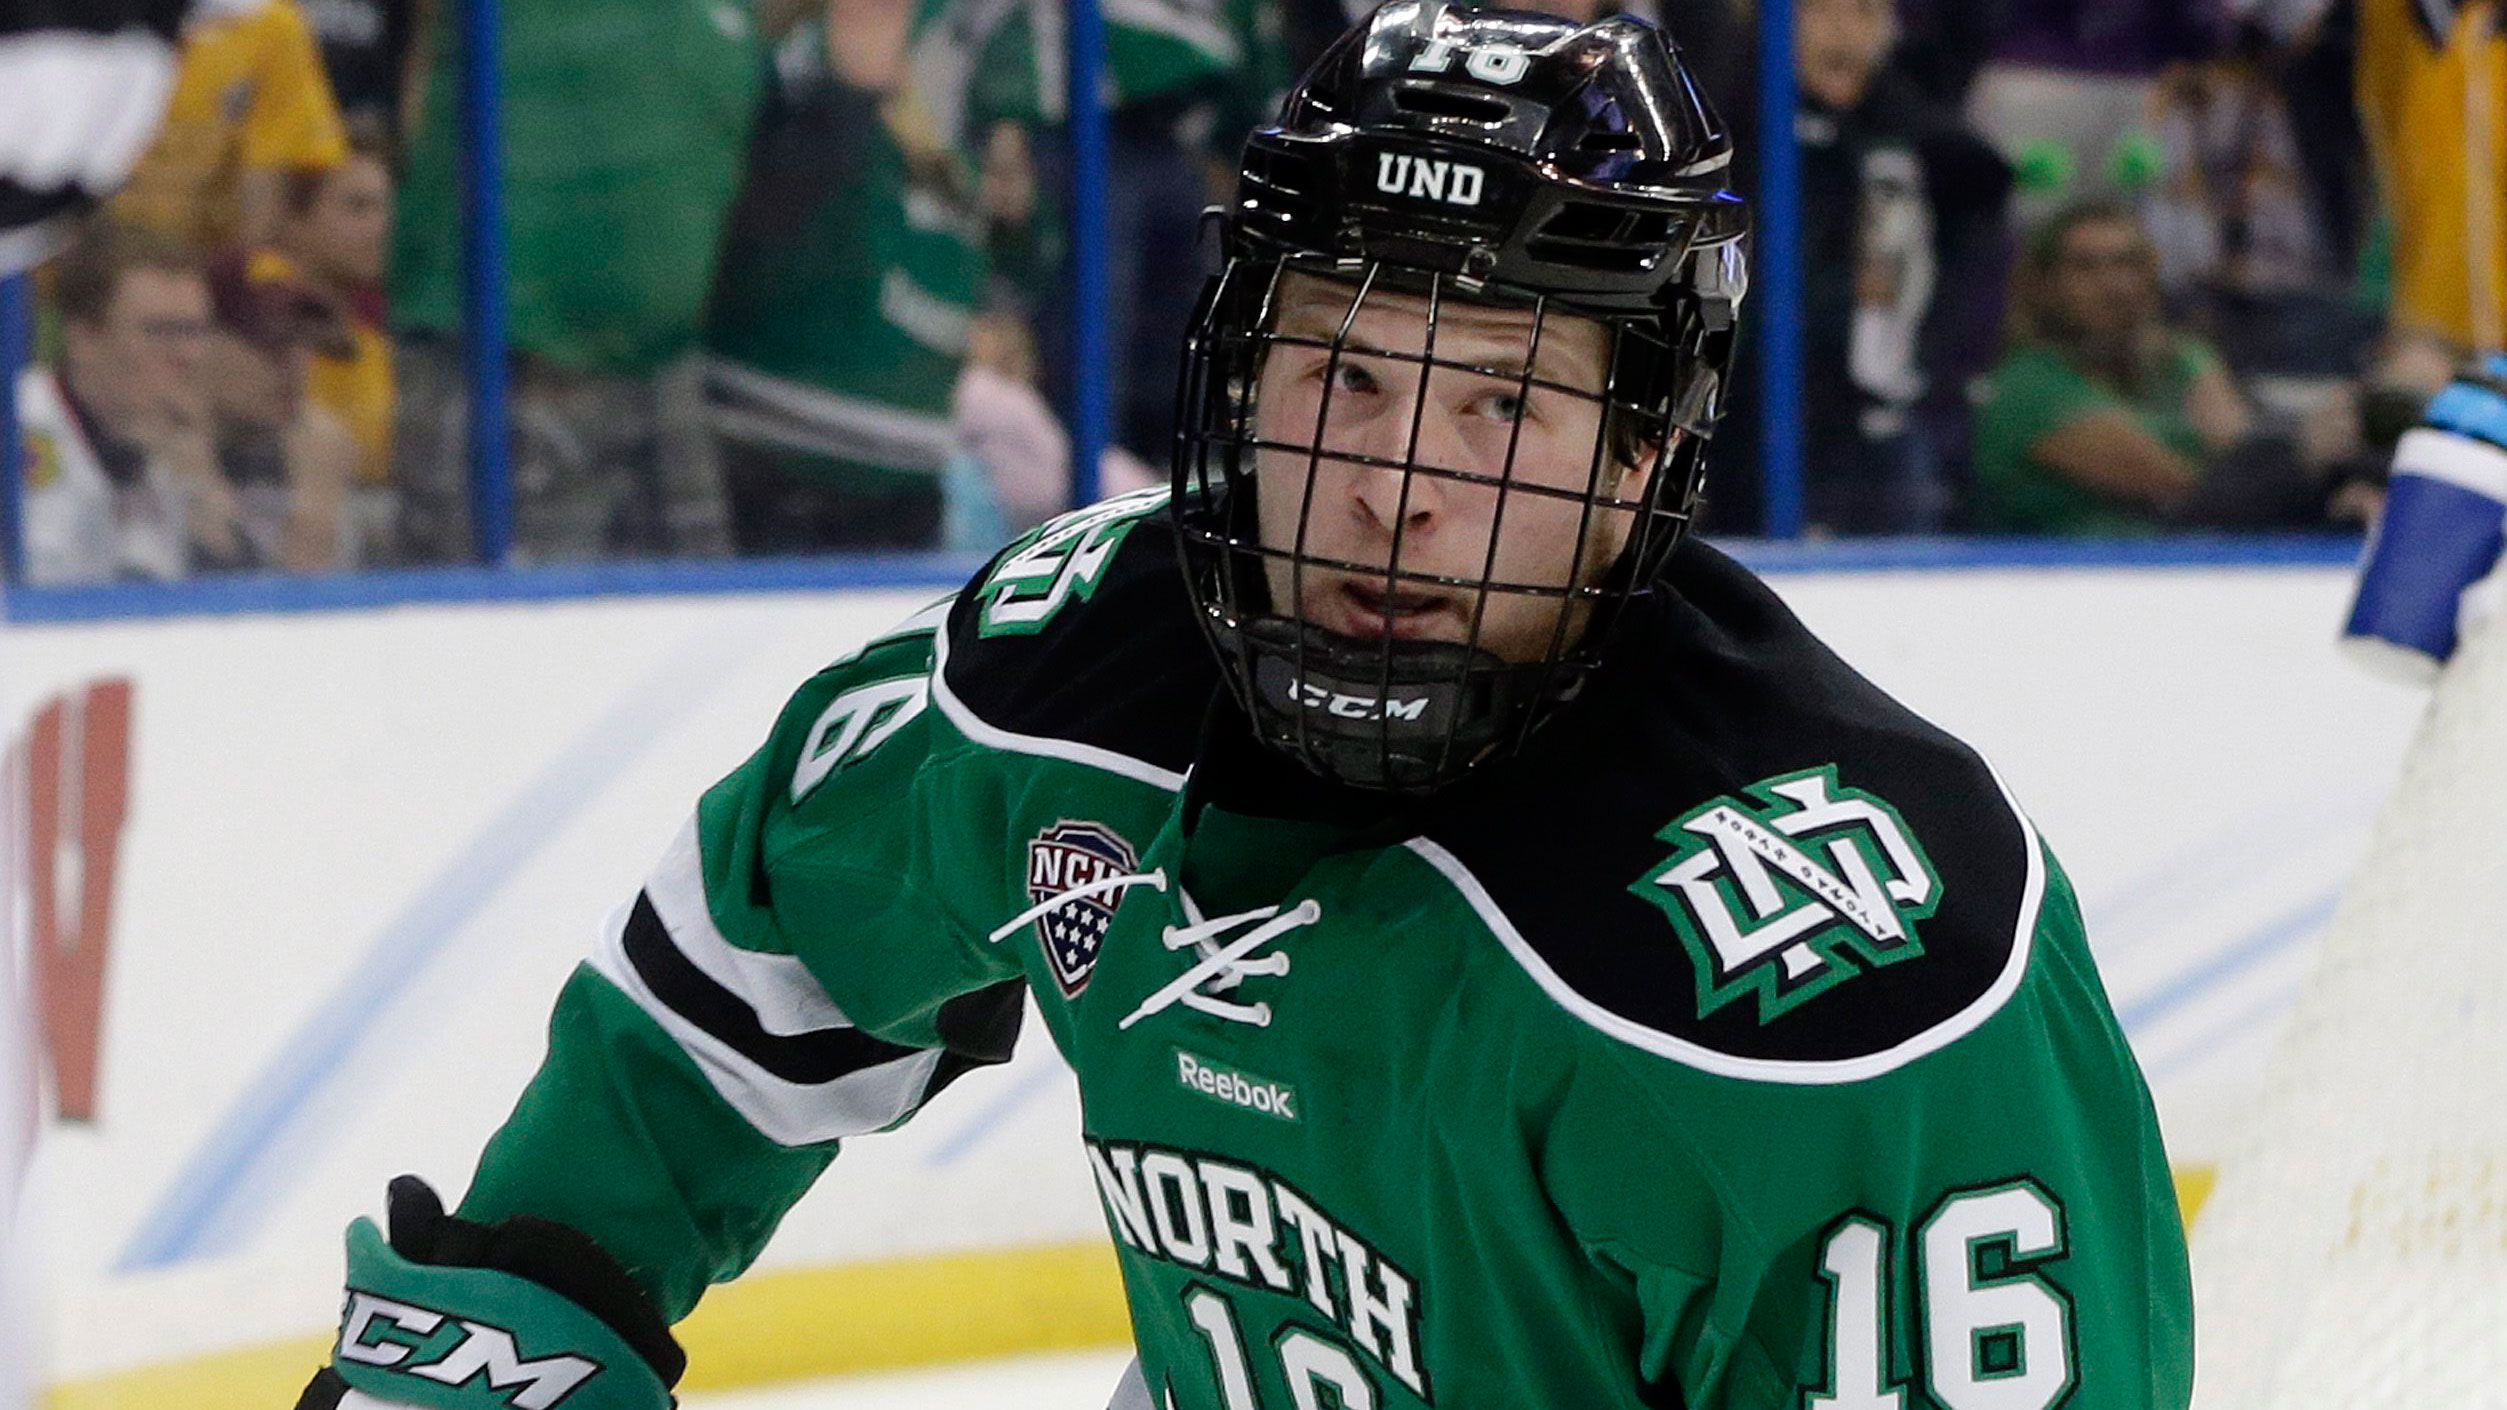 Will The Canucks Sign Brock Boeser? Top Prospect's Season Ends (Of Course They Will)